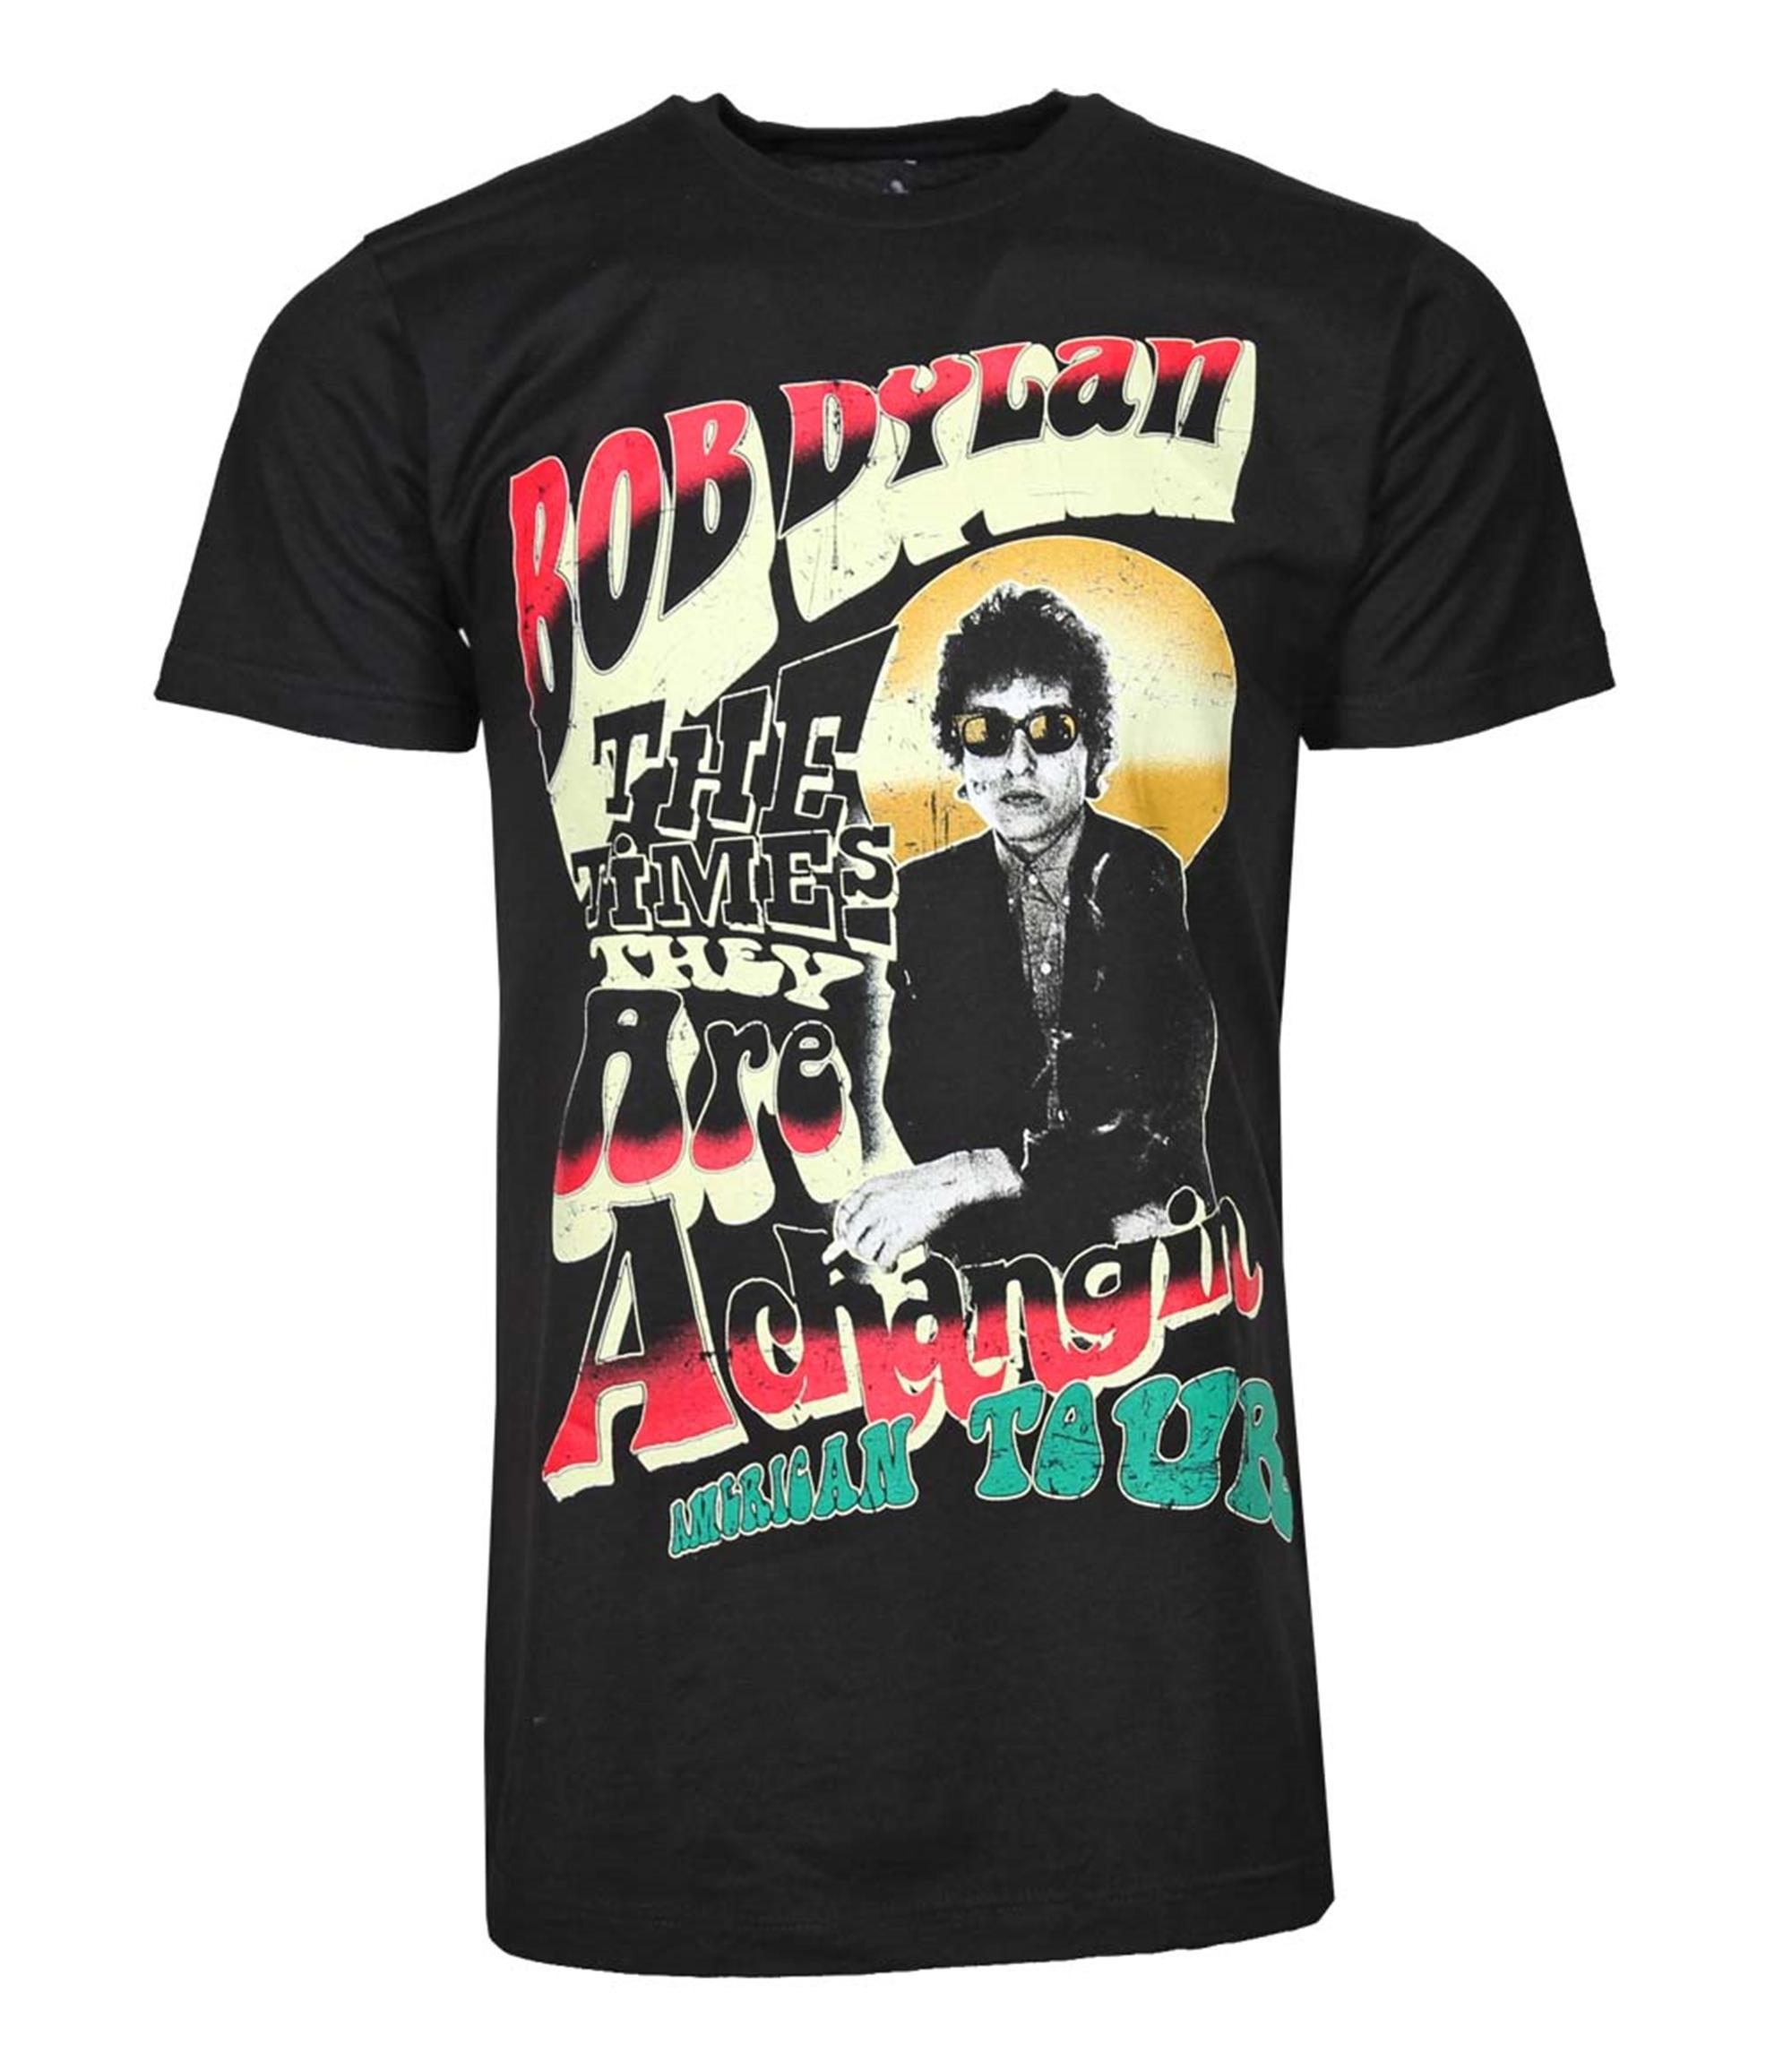 Bob Dylan The Times Are Changing T-Shirt